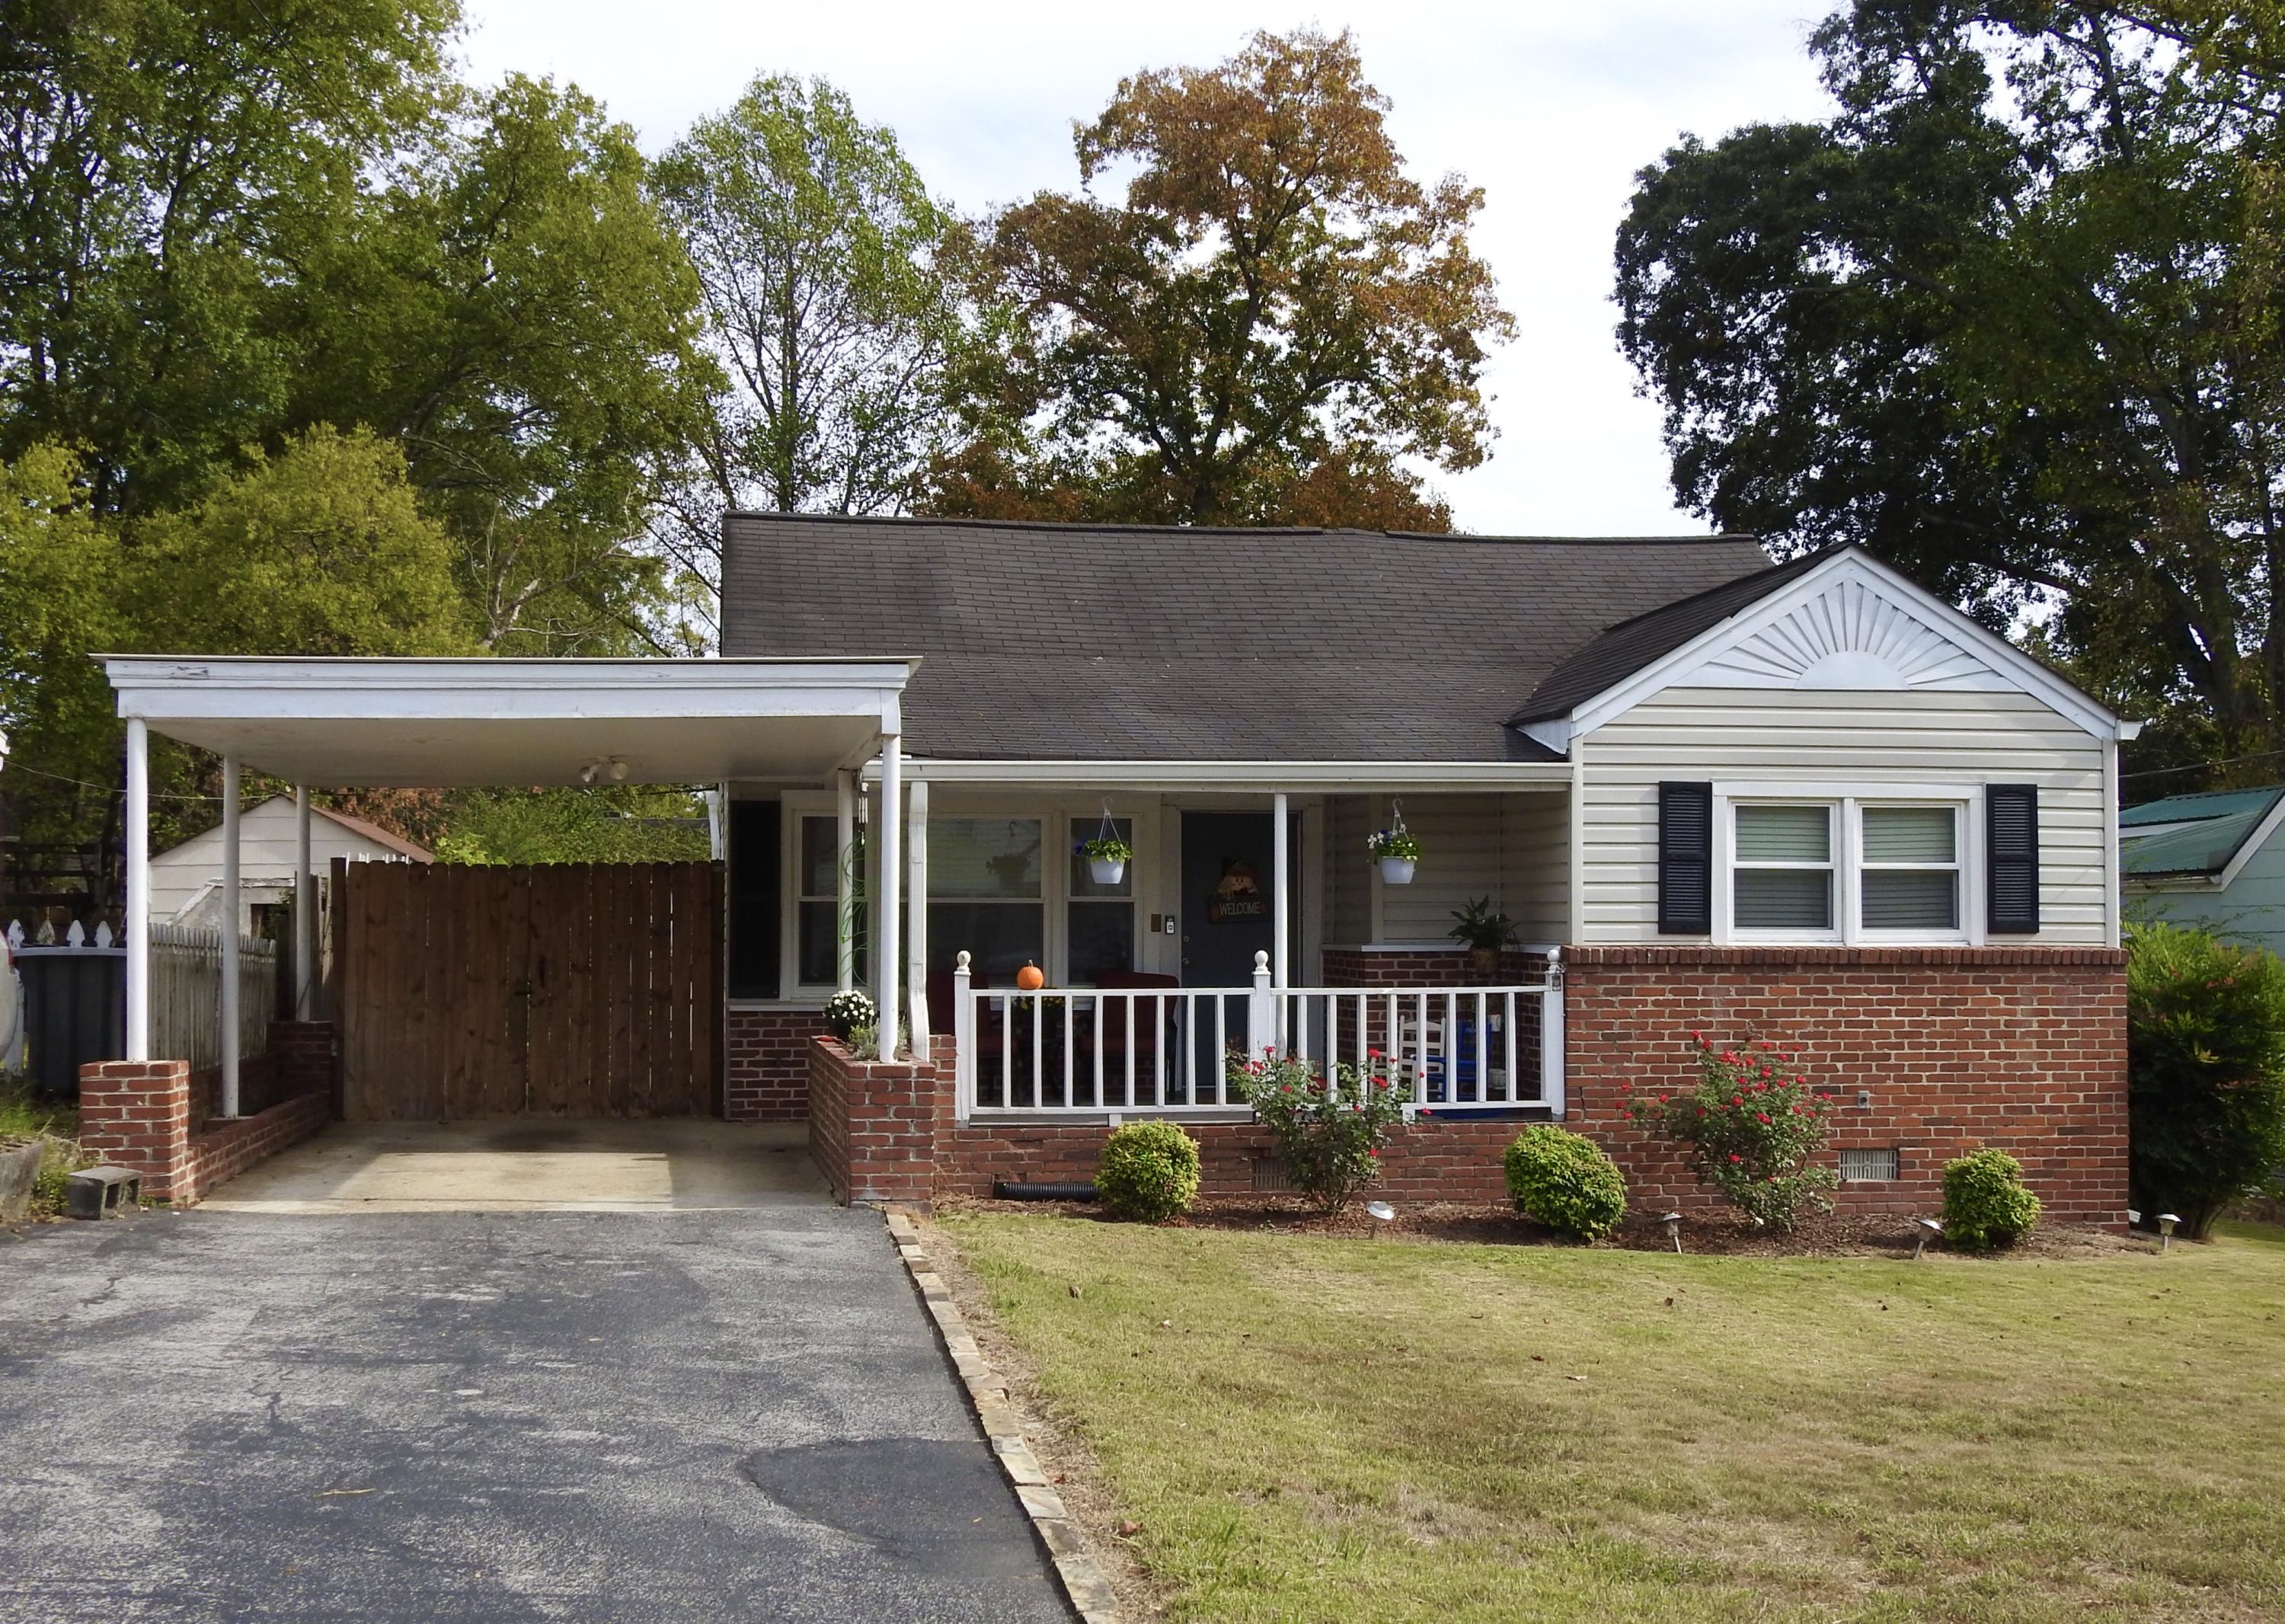 520 S Lovell  Ave, Chattanooga in Hamilton County, TN 37412 Home for Sale